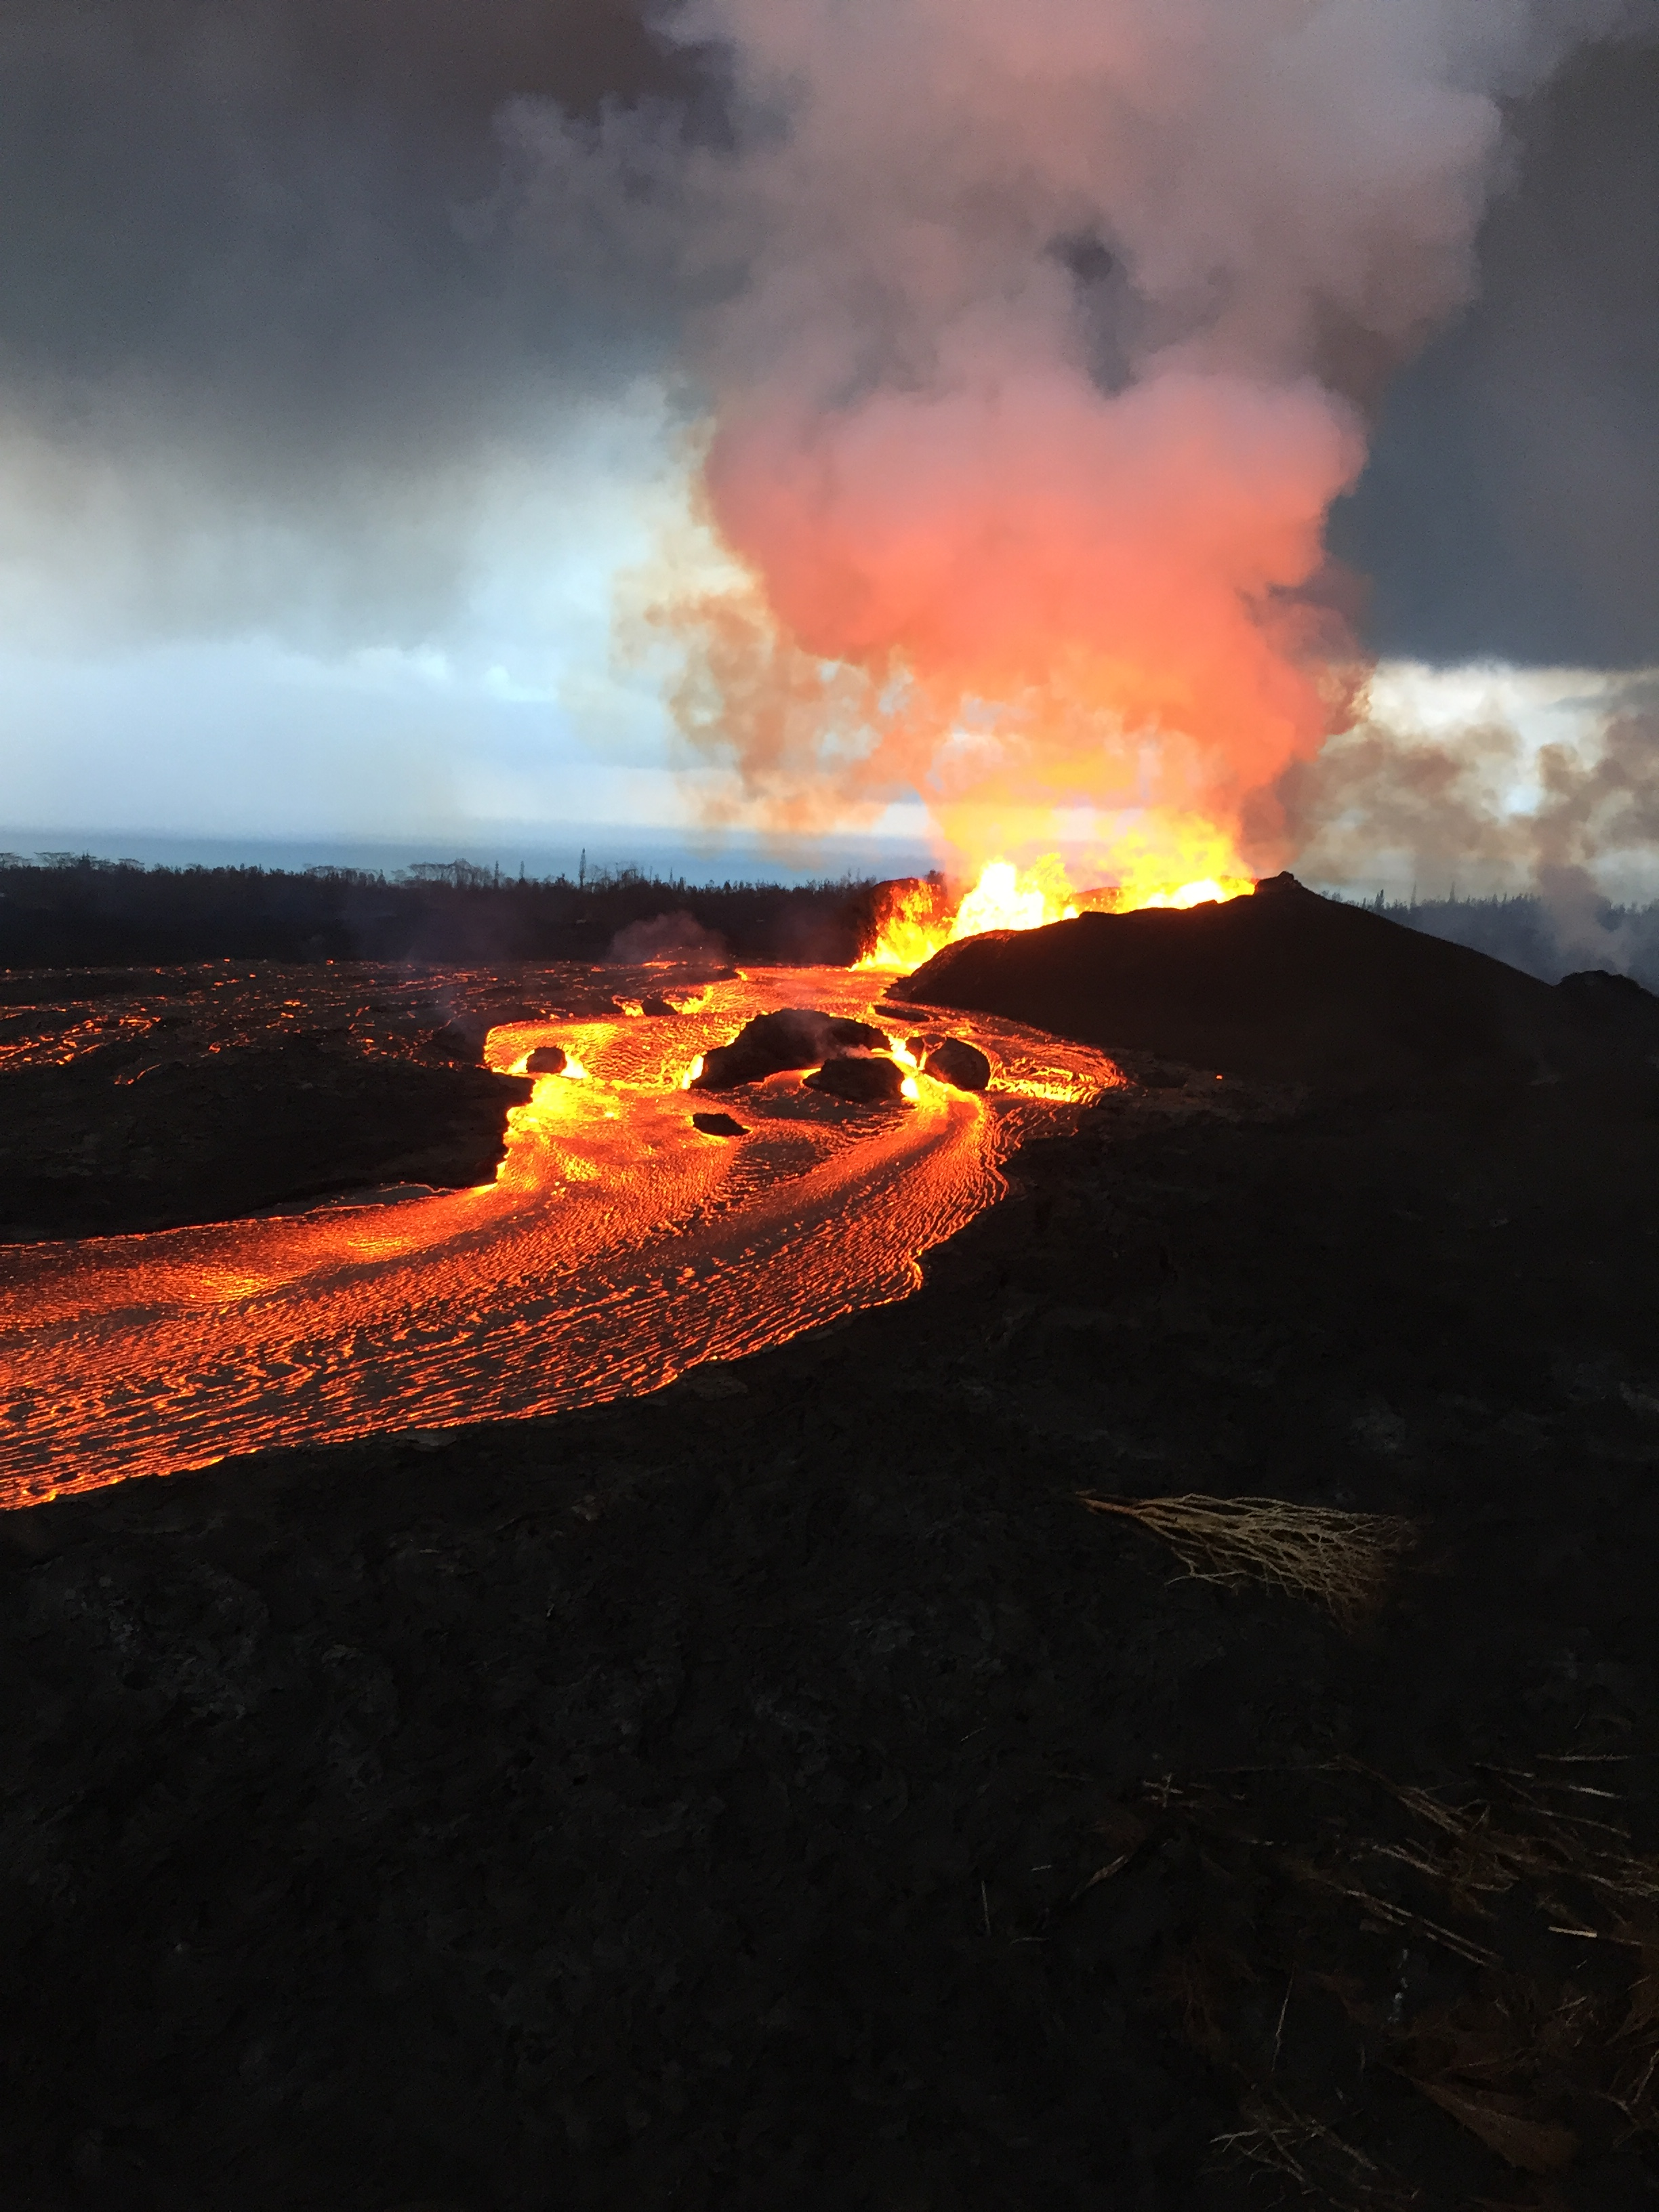 Today's Image of the Day from the U.S. Geological Survey (USGS) shows the persistent activity of Kilauea's fissure 8, which continues to eject lava at heights of tens to hundreds of feet into the air.